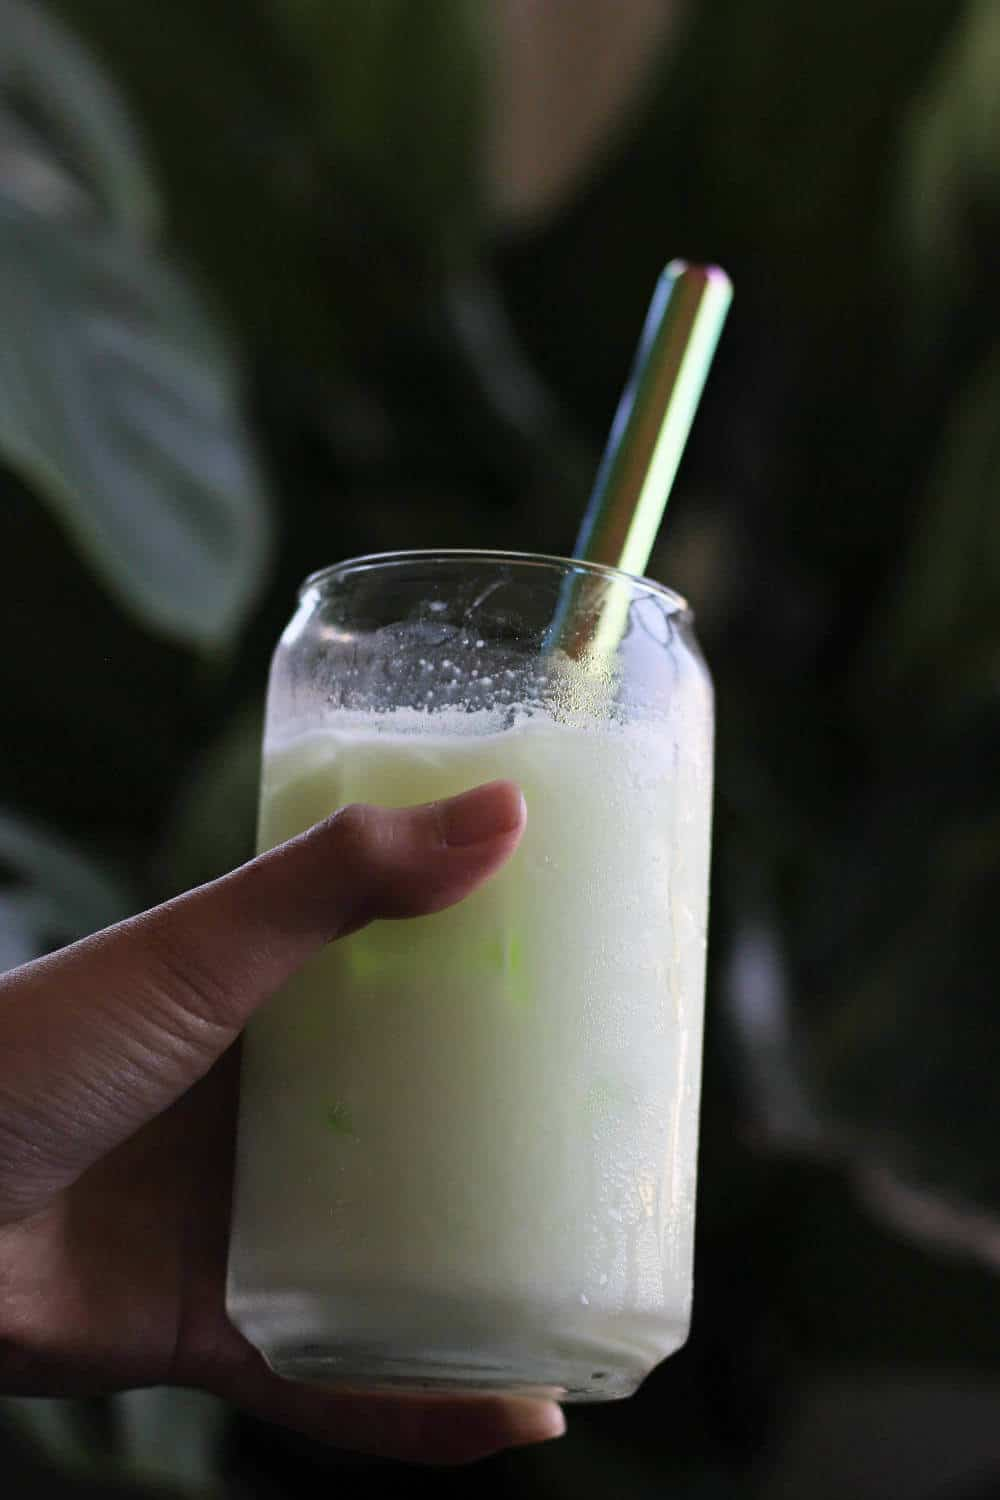 Hand holding clear cup filled with opaque, slightly green liquid and a metal straw.